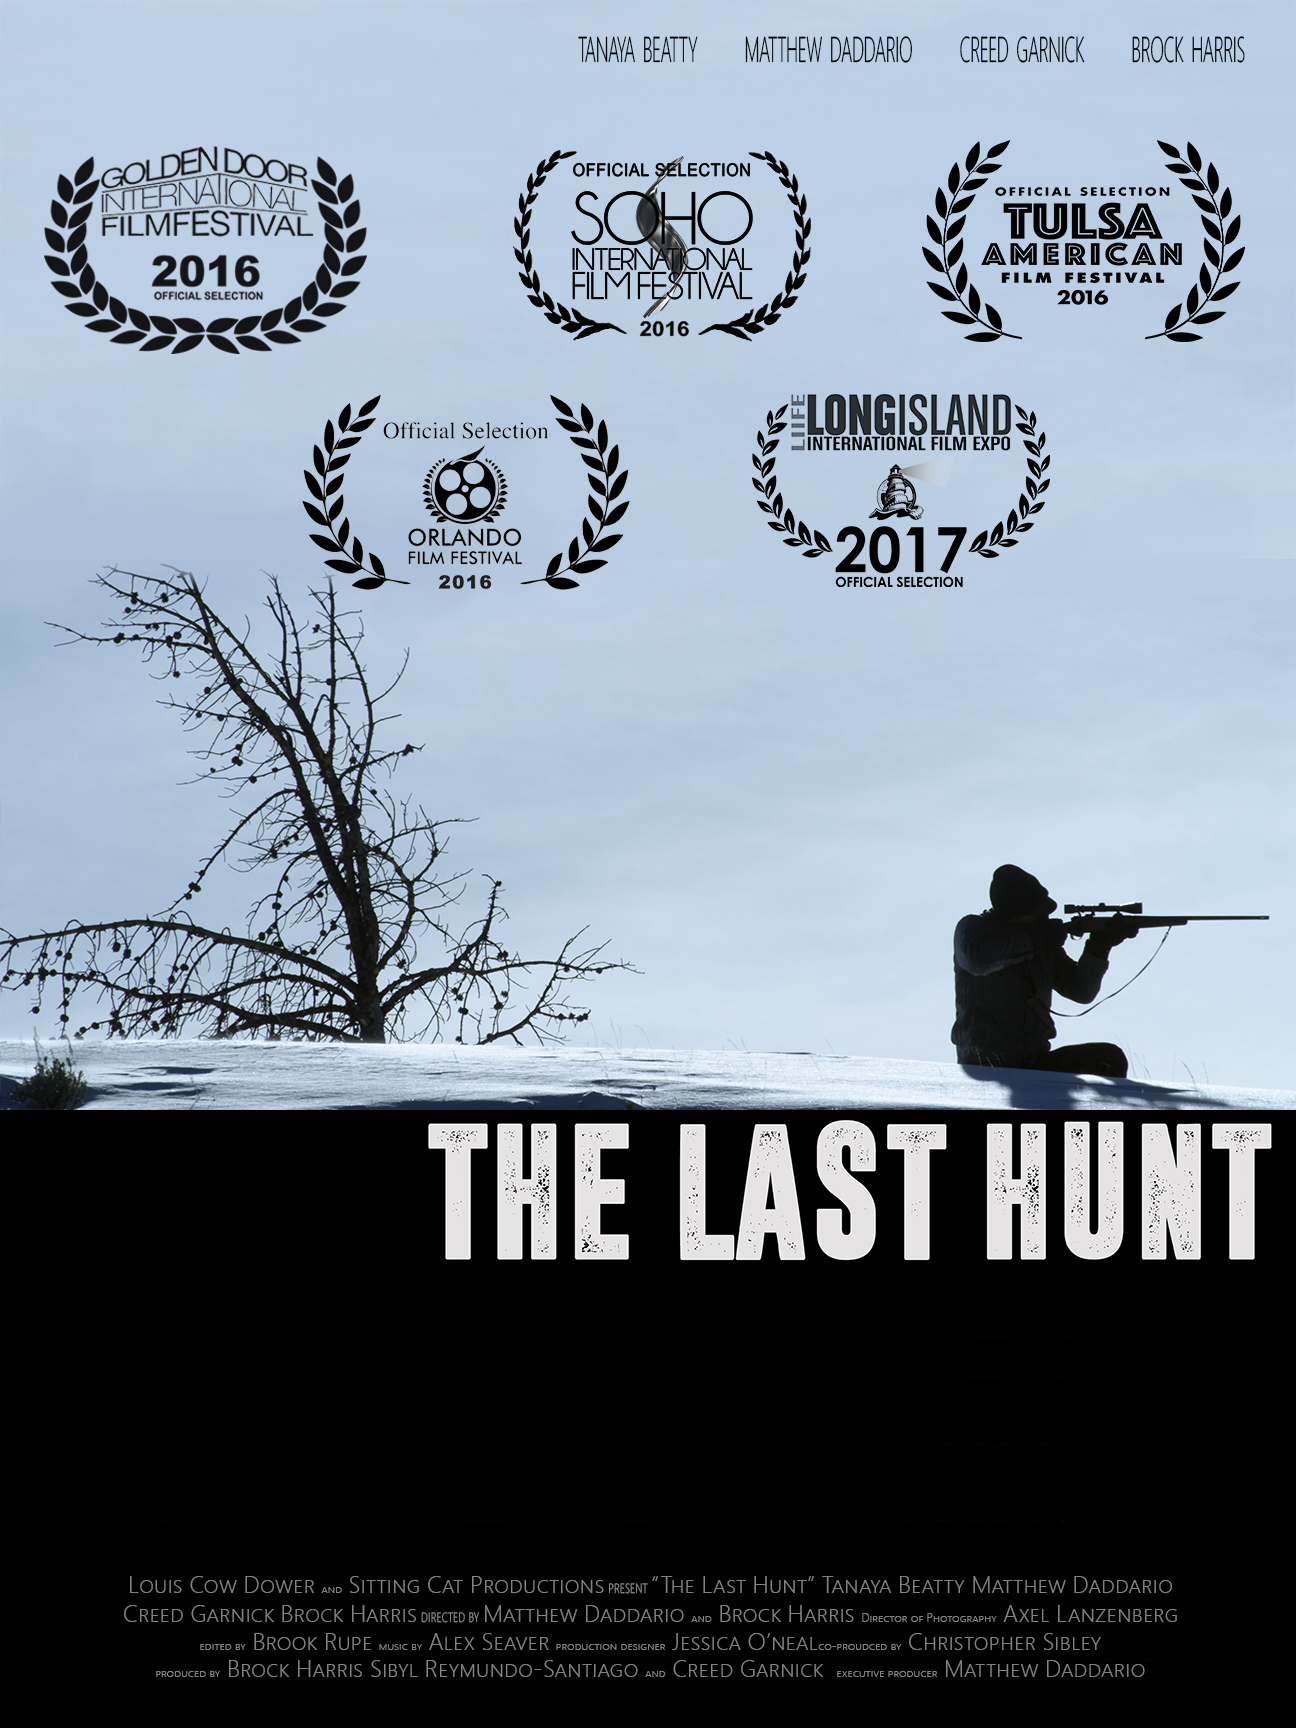 THE LAST HUNT (2016), Short Film